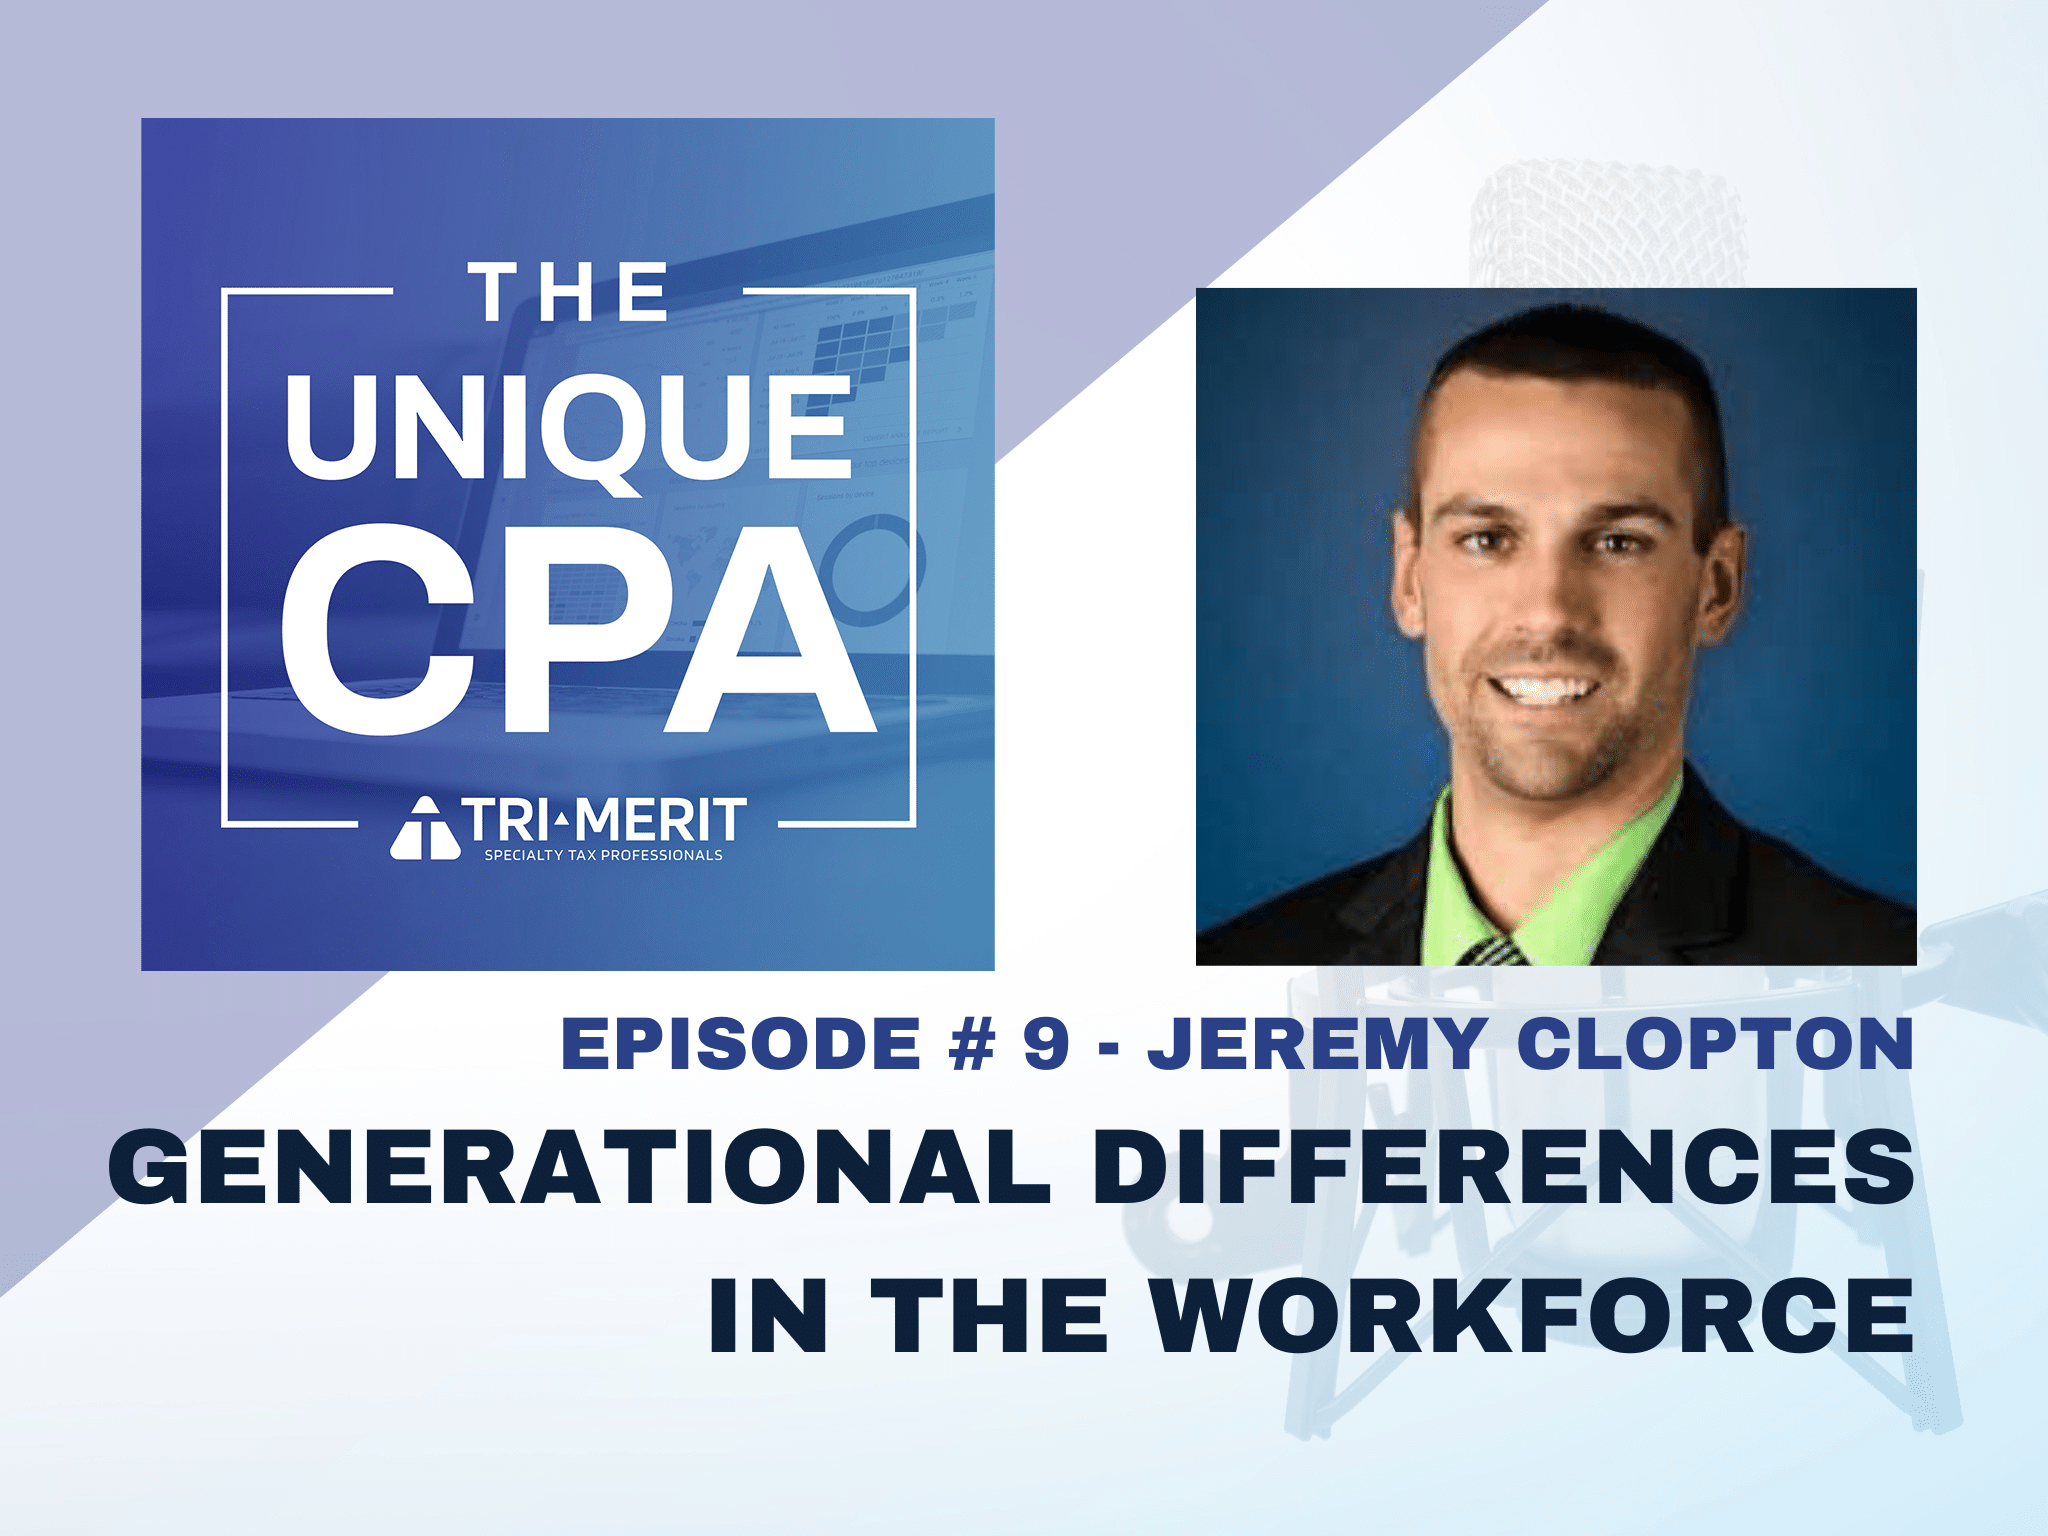 The Unique CPA Feature Image Ep 9 - Generational Differences in the Workforce - Tri-Merit